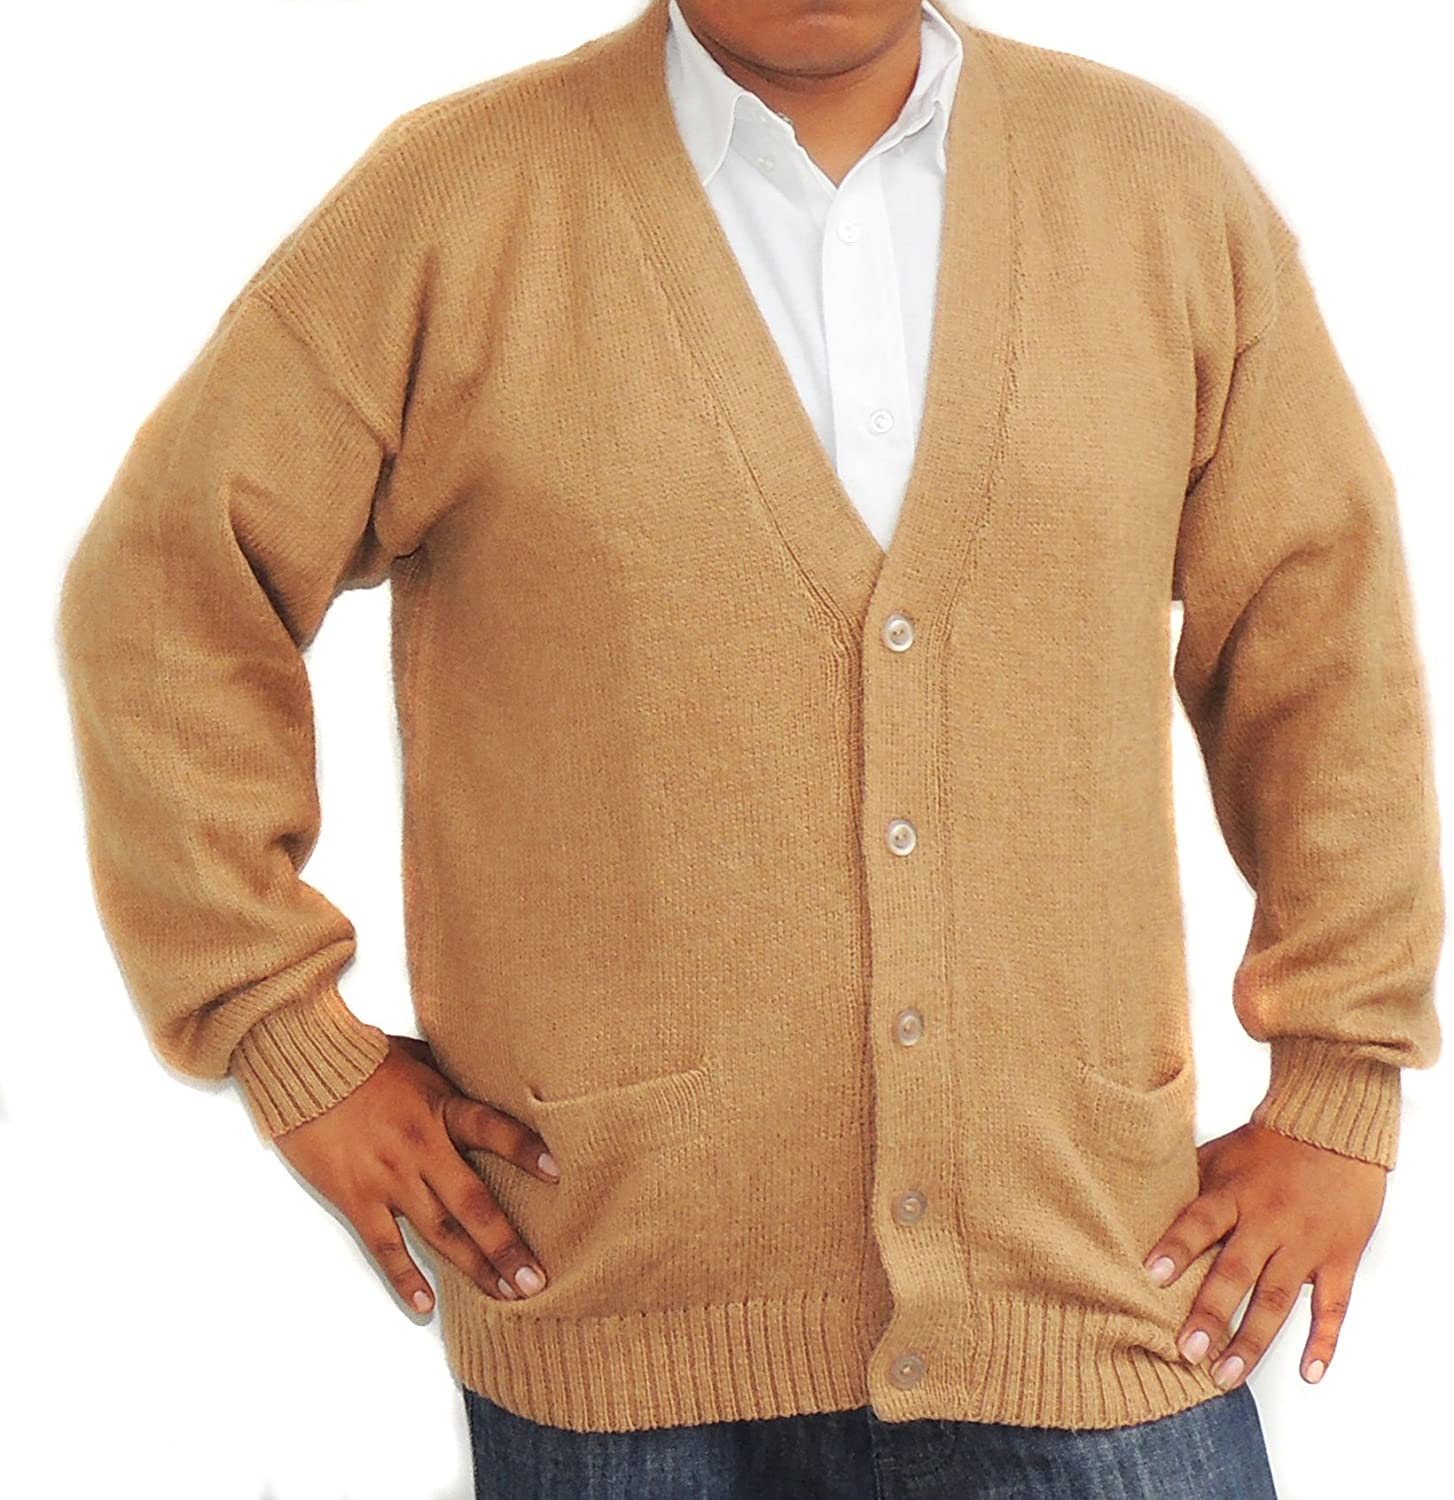 ALPACA CARDIGAN GOLF Superior SWEATER Sale special price JERSEY V m neck and Pockets buttons